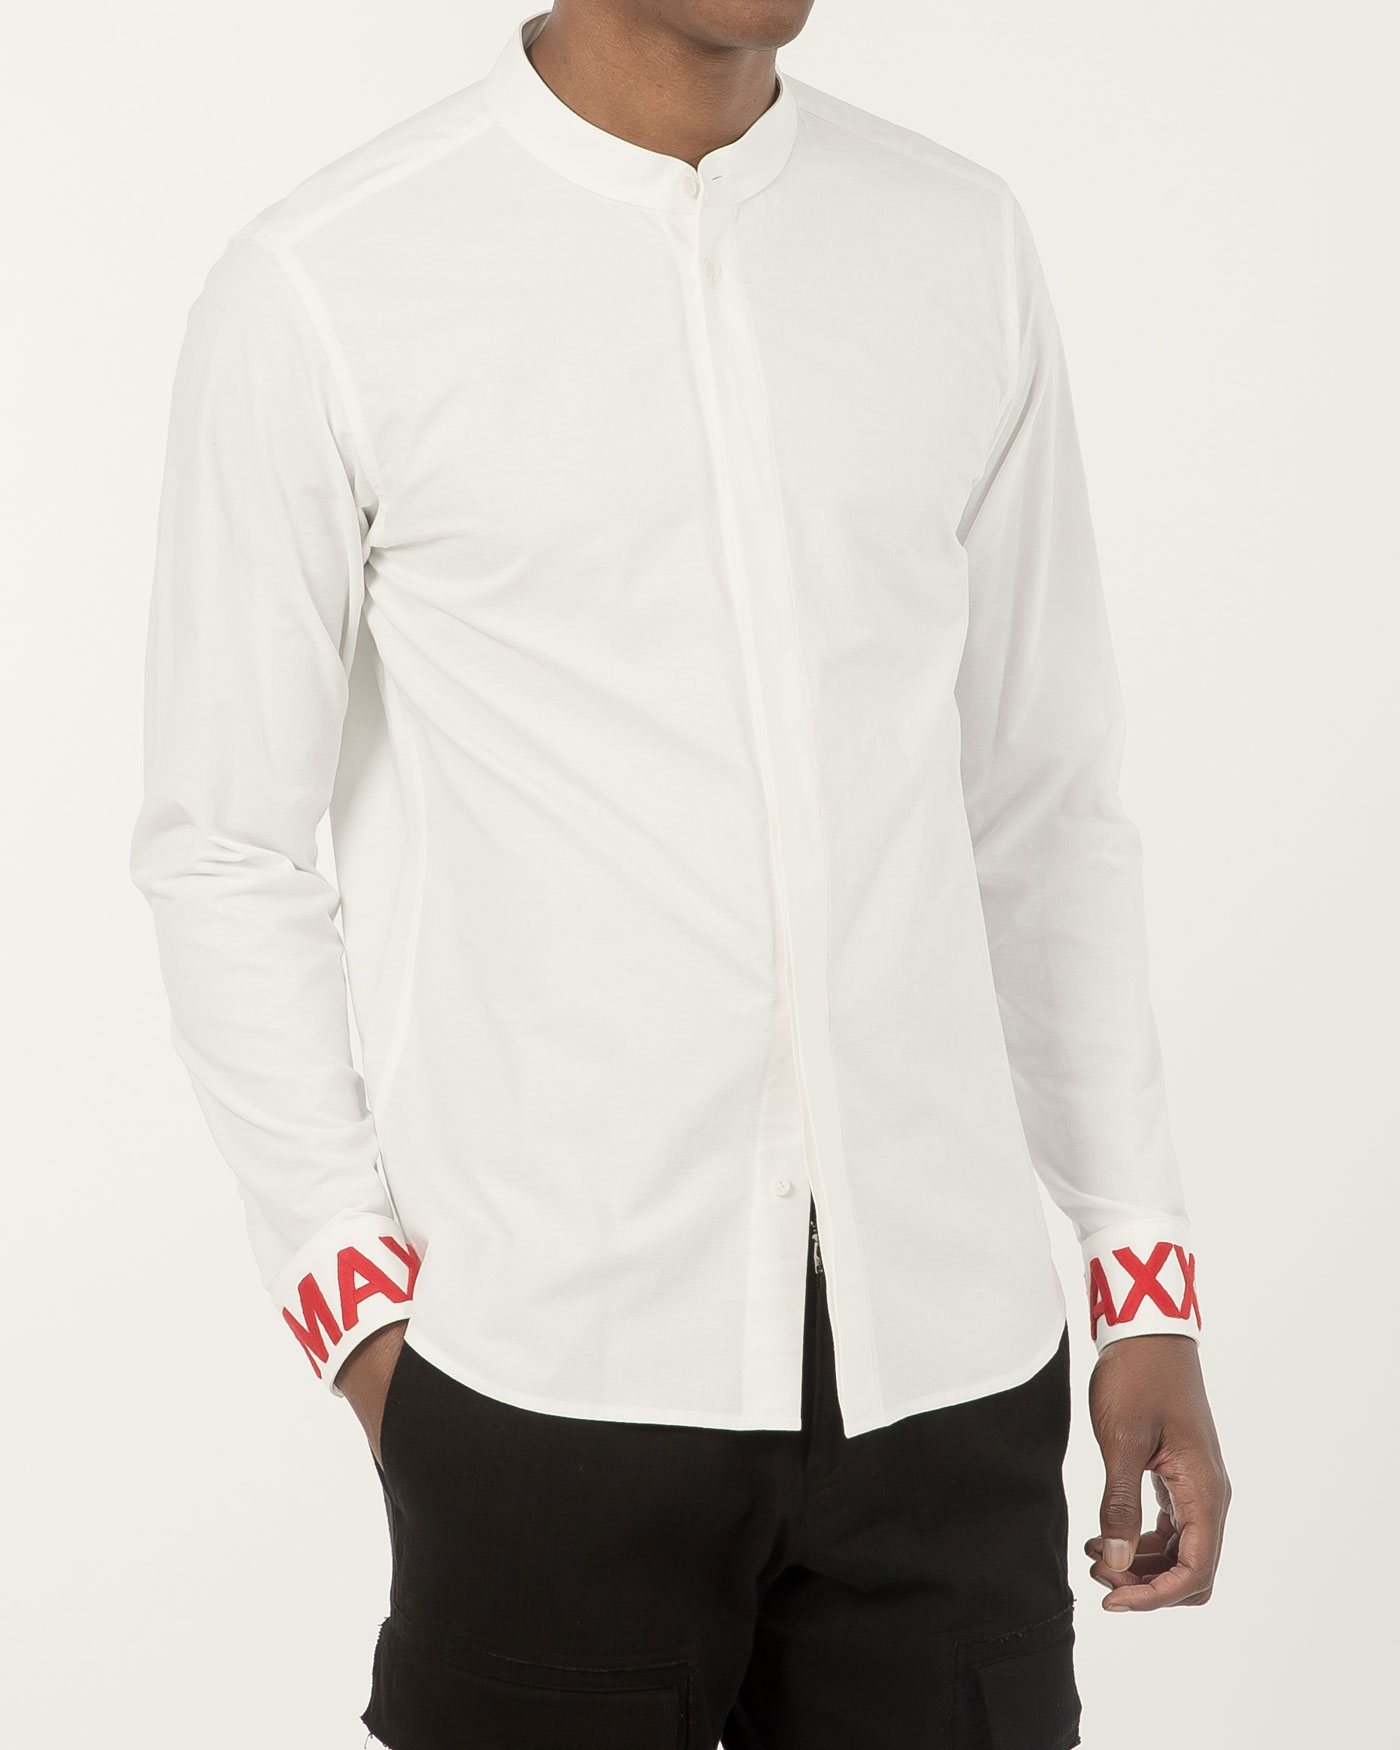 Stand Collar shirt with Cuff Embroidered